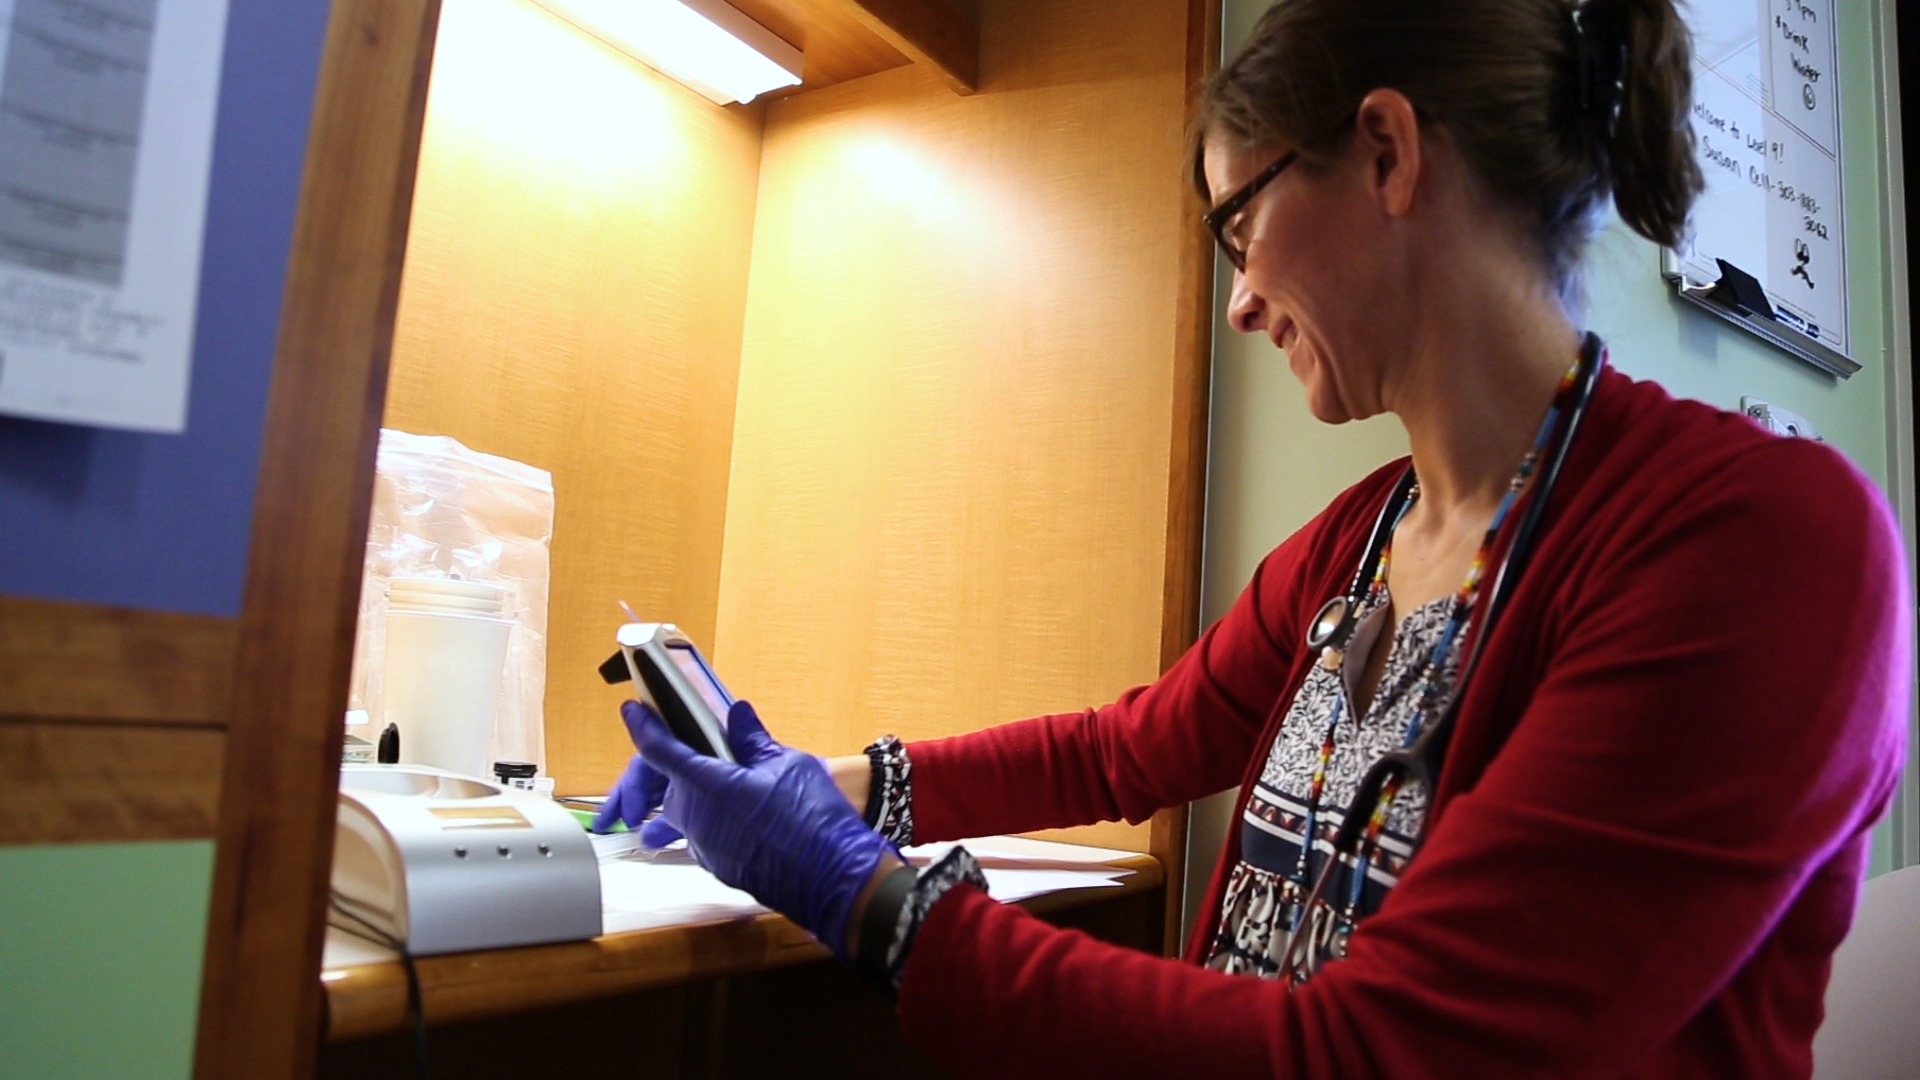 Doctor Kristen Nadeau, Children's Hospital Colorado, wears blue gloves while handling a medical device.